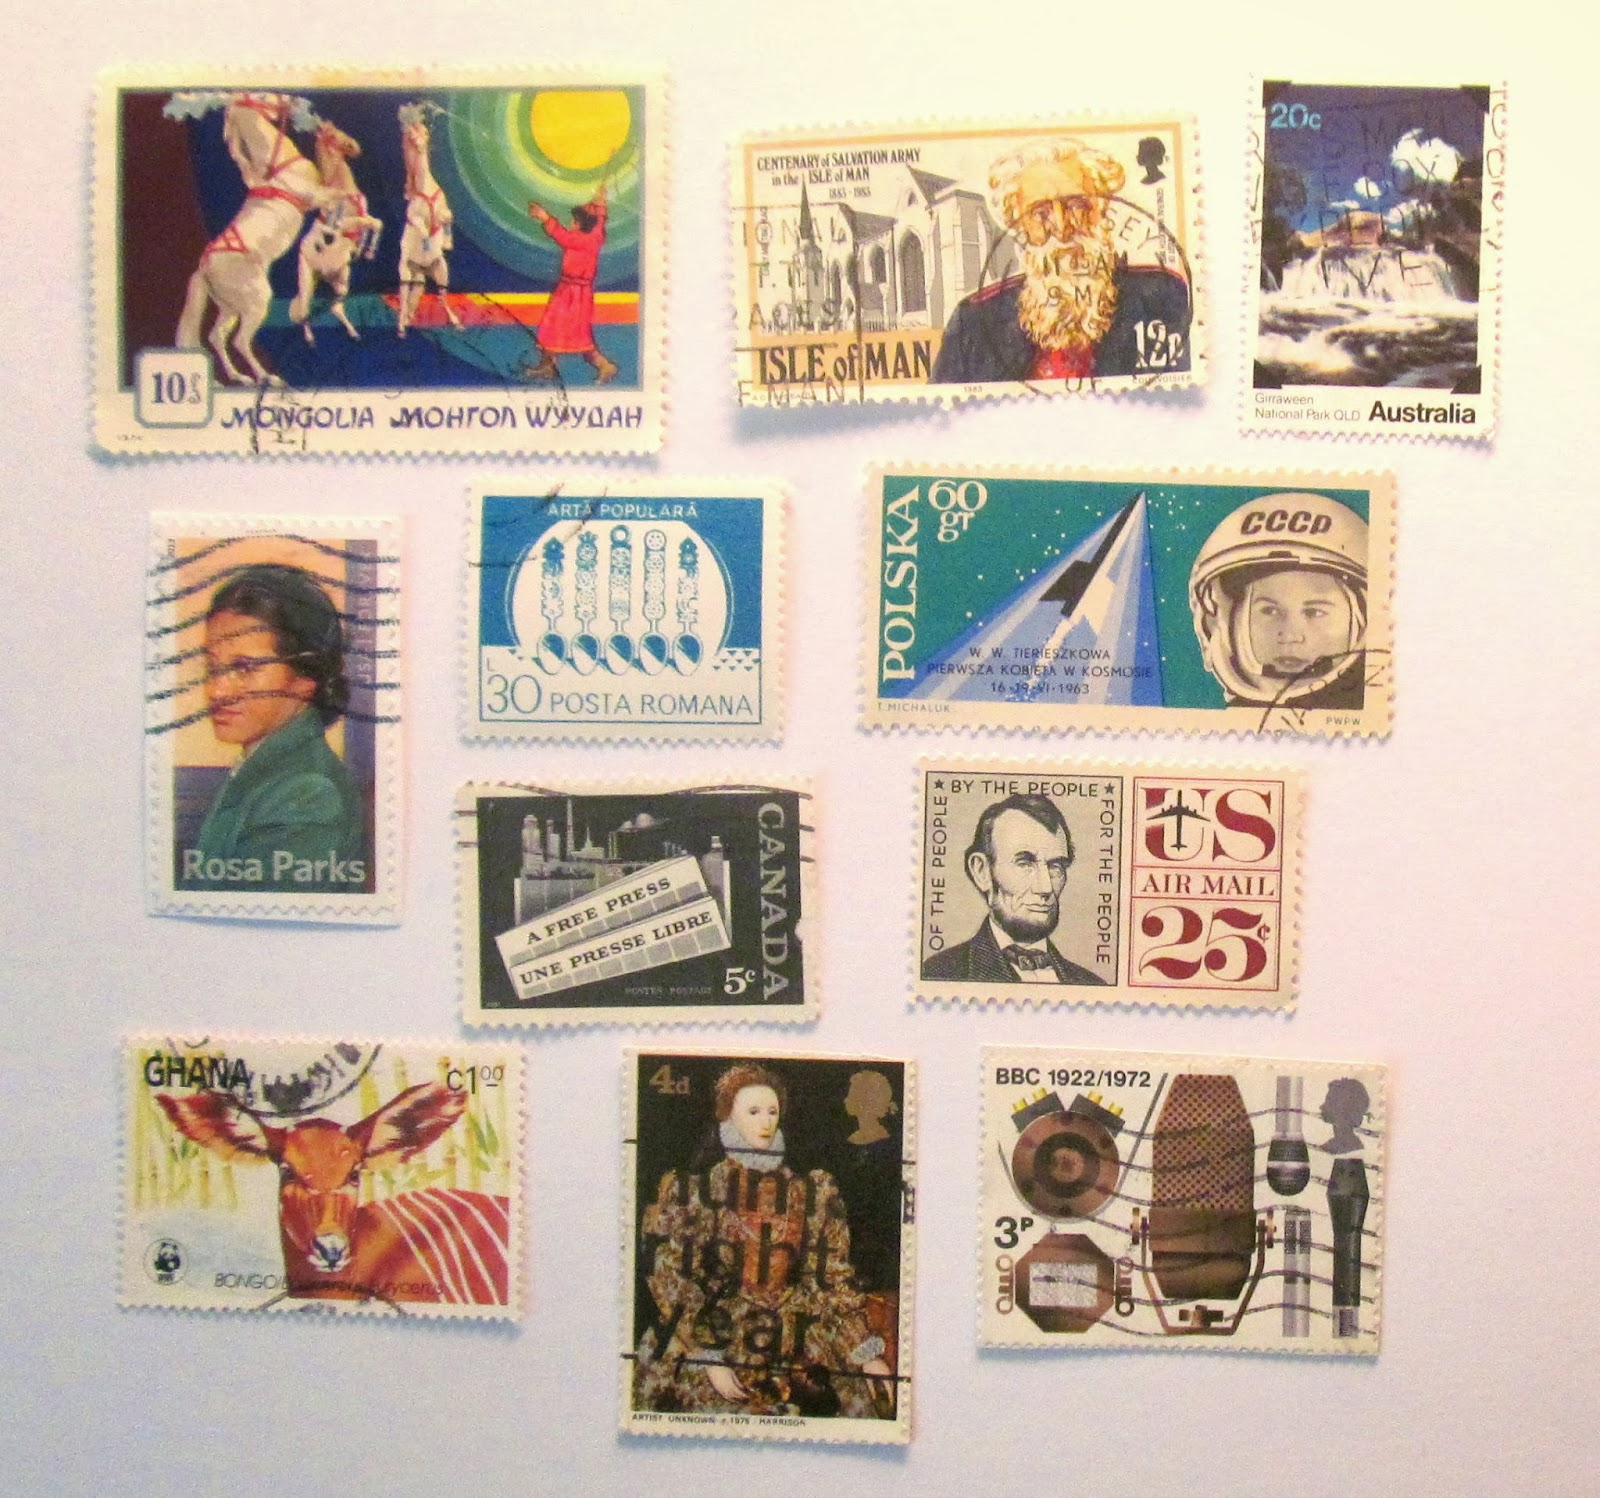 used postage stamps in crafting